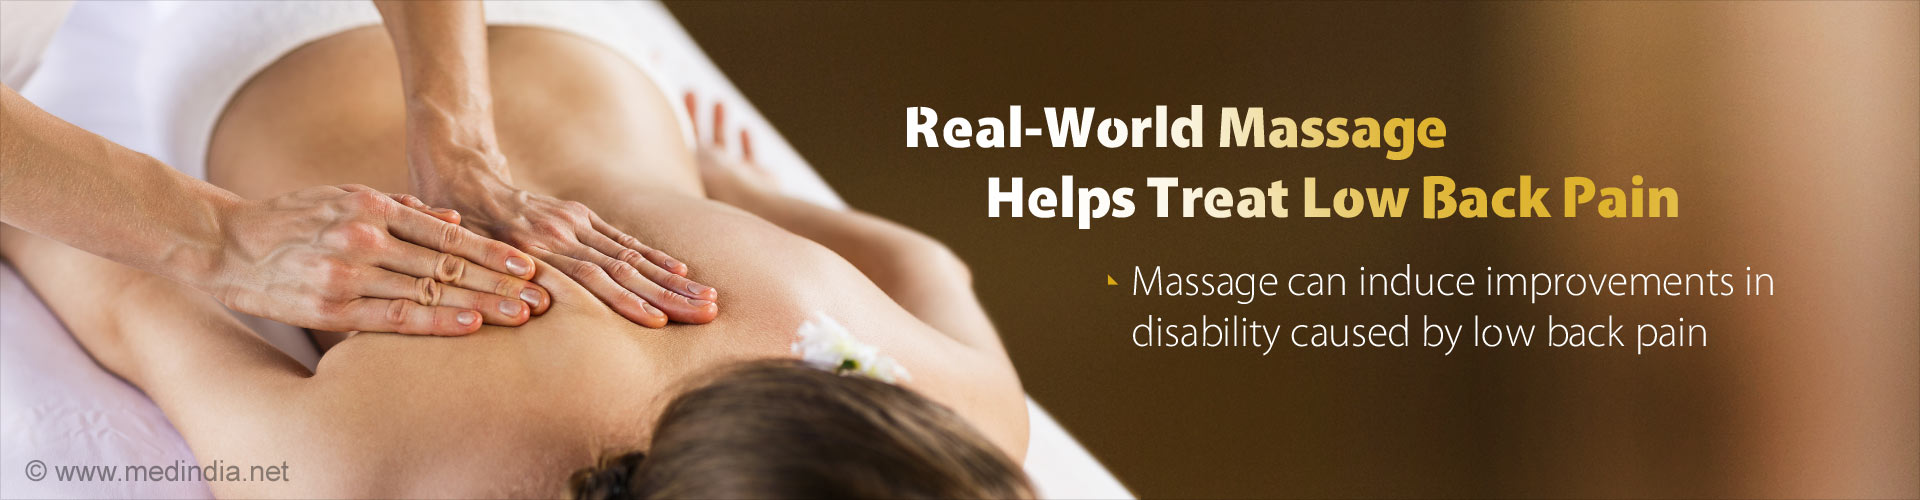 Real-World Massage Helps Treat Low Back Pain - Massage can induce improvements in disability caused by low back pain